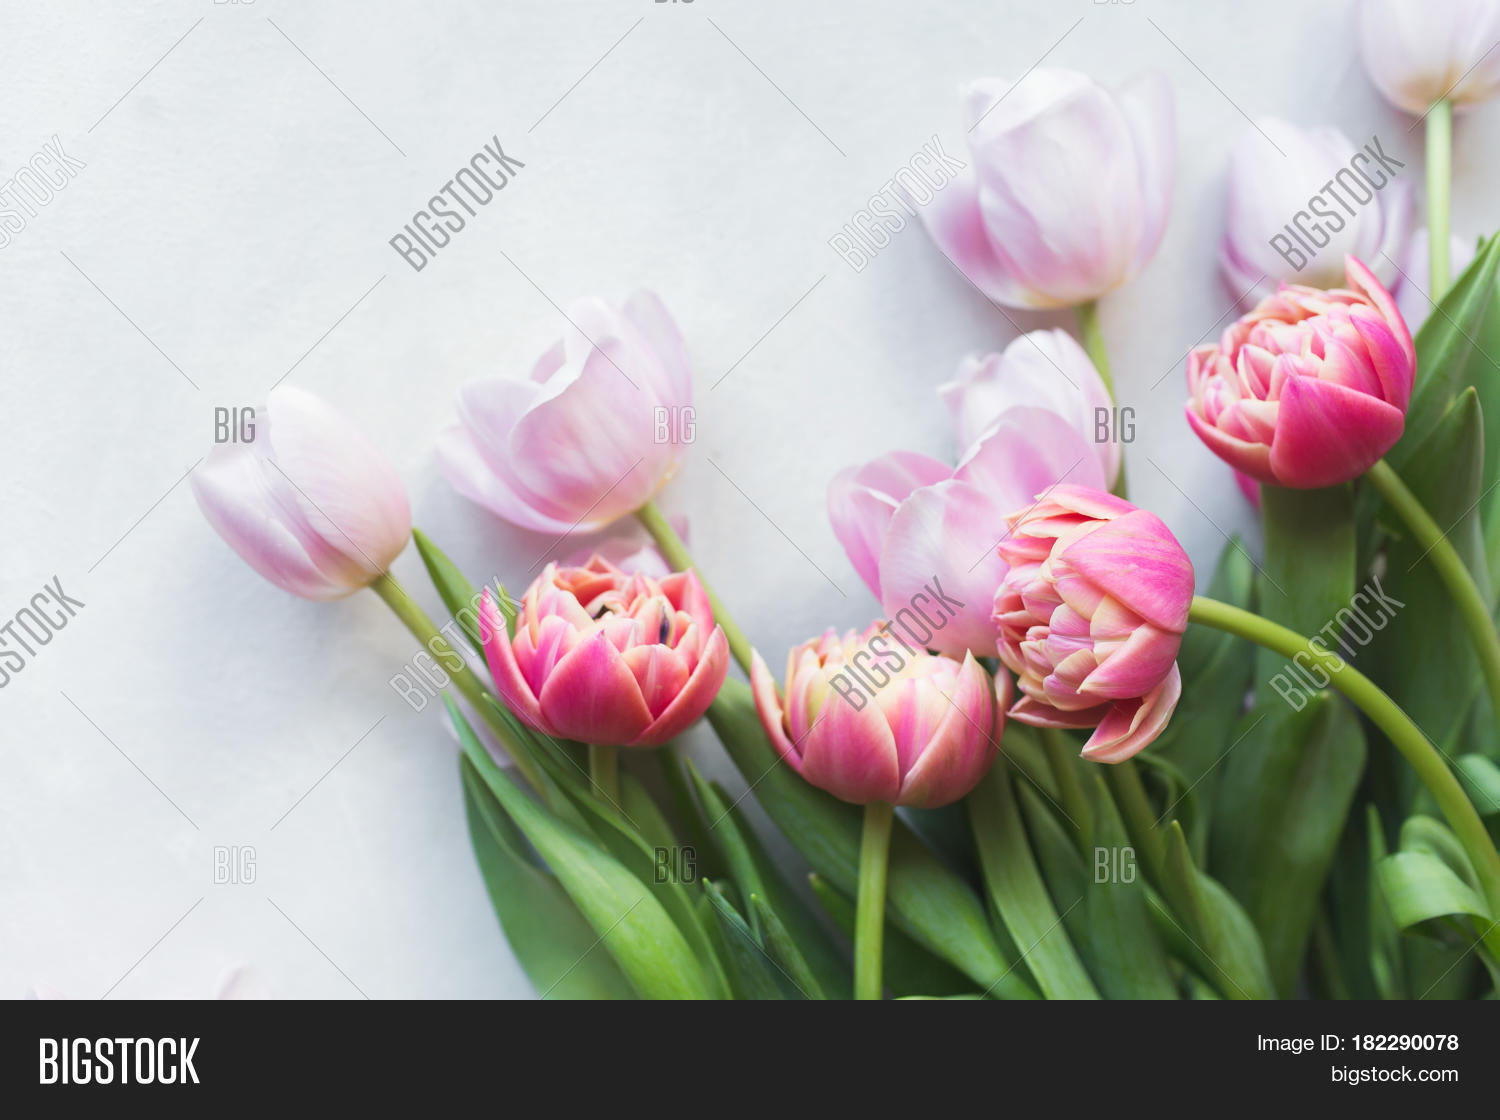 Pink Tulip Tulips Image Photo Free Trial Bigstock